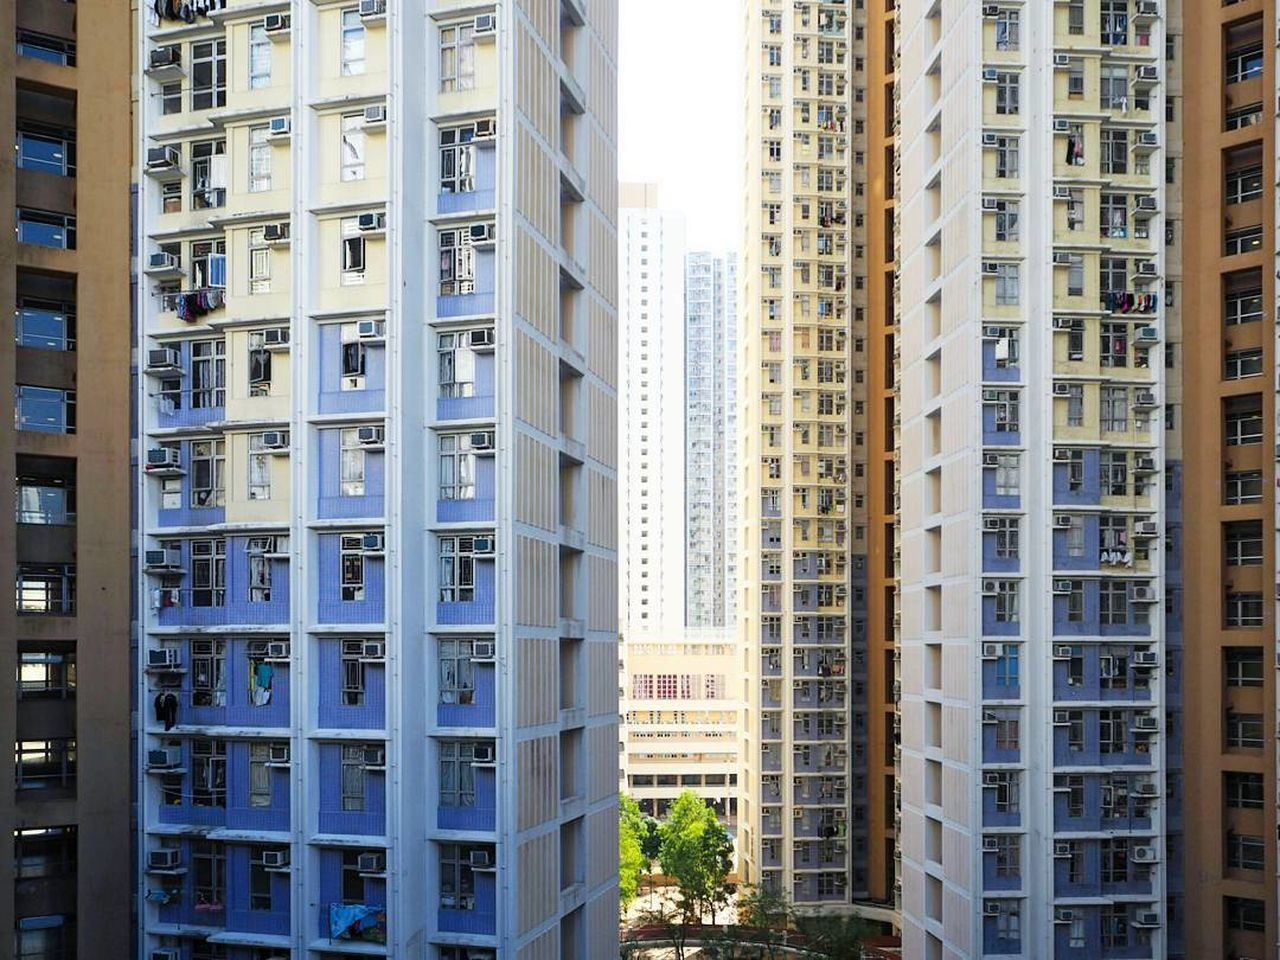 city, architecture, window, apartment, housing development, residential building, cityscape, skyscraper, day, community, building exterior, outdoors, no people